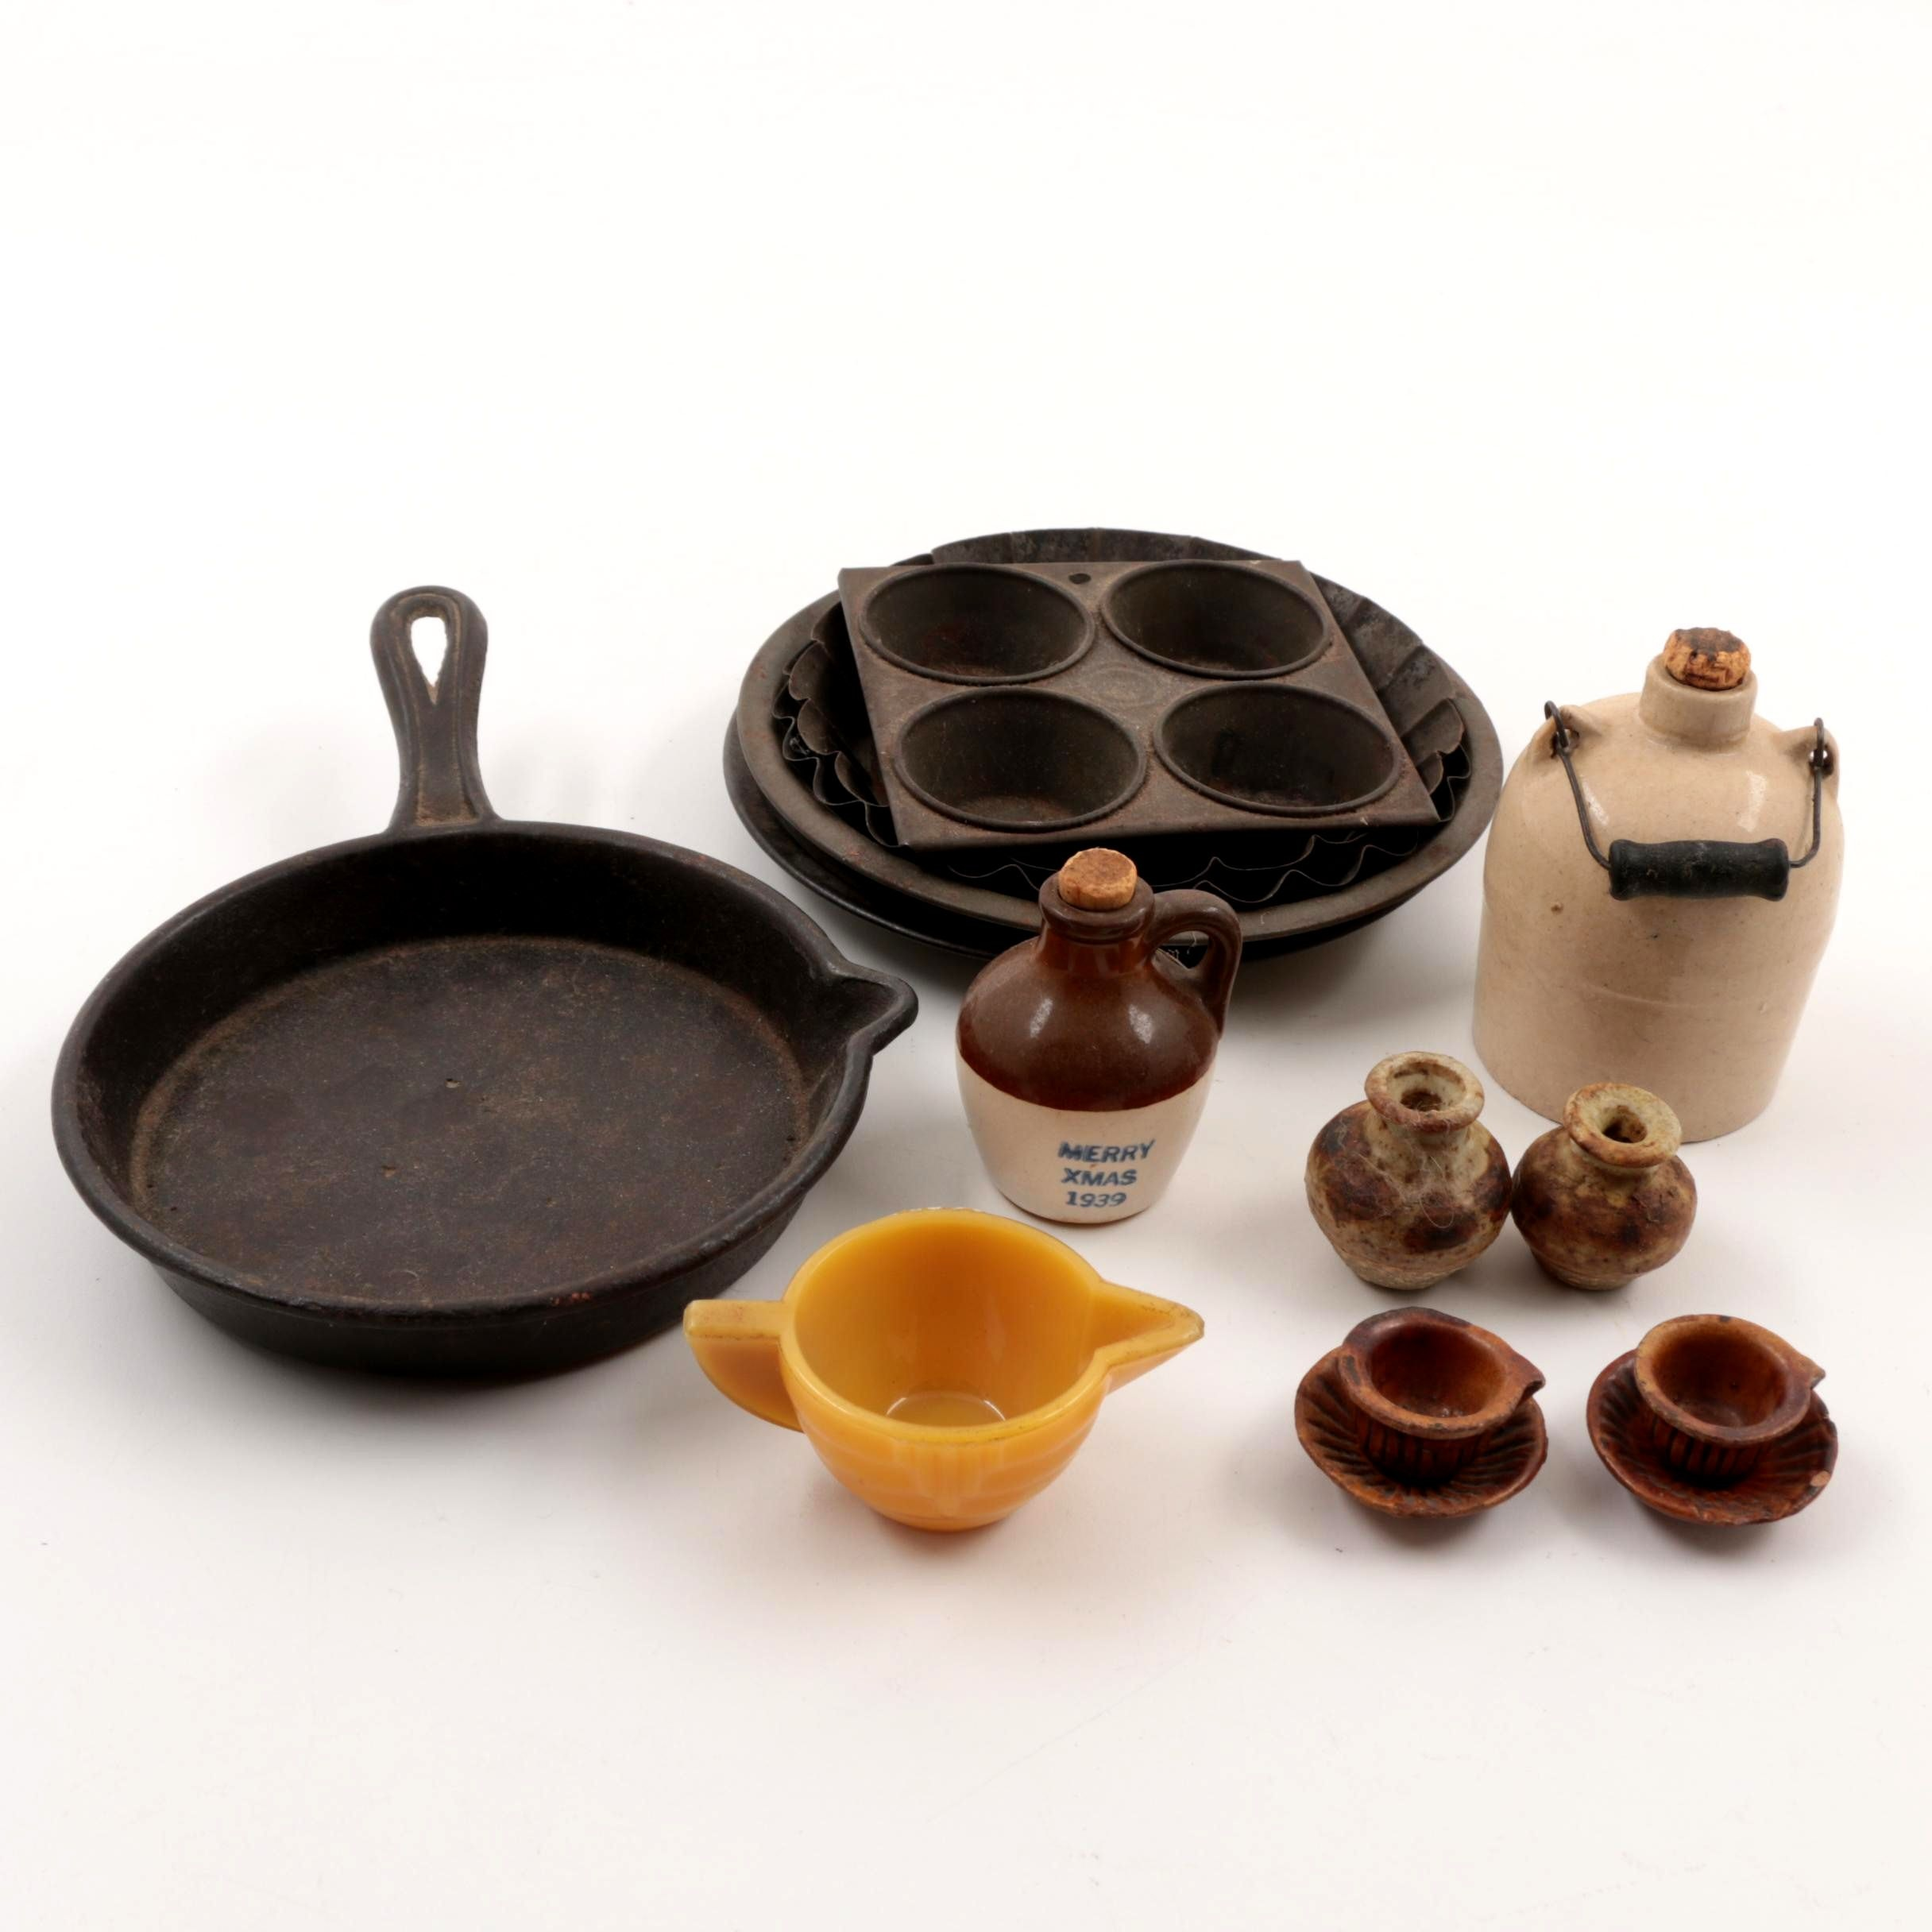 Vintage Stoneware and Cast Iron Cookware, Bakeware, and Food Storage